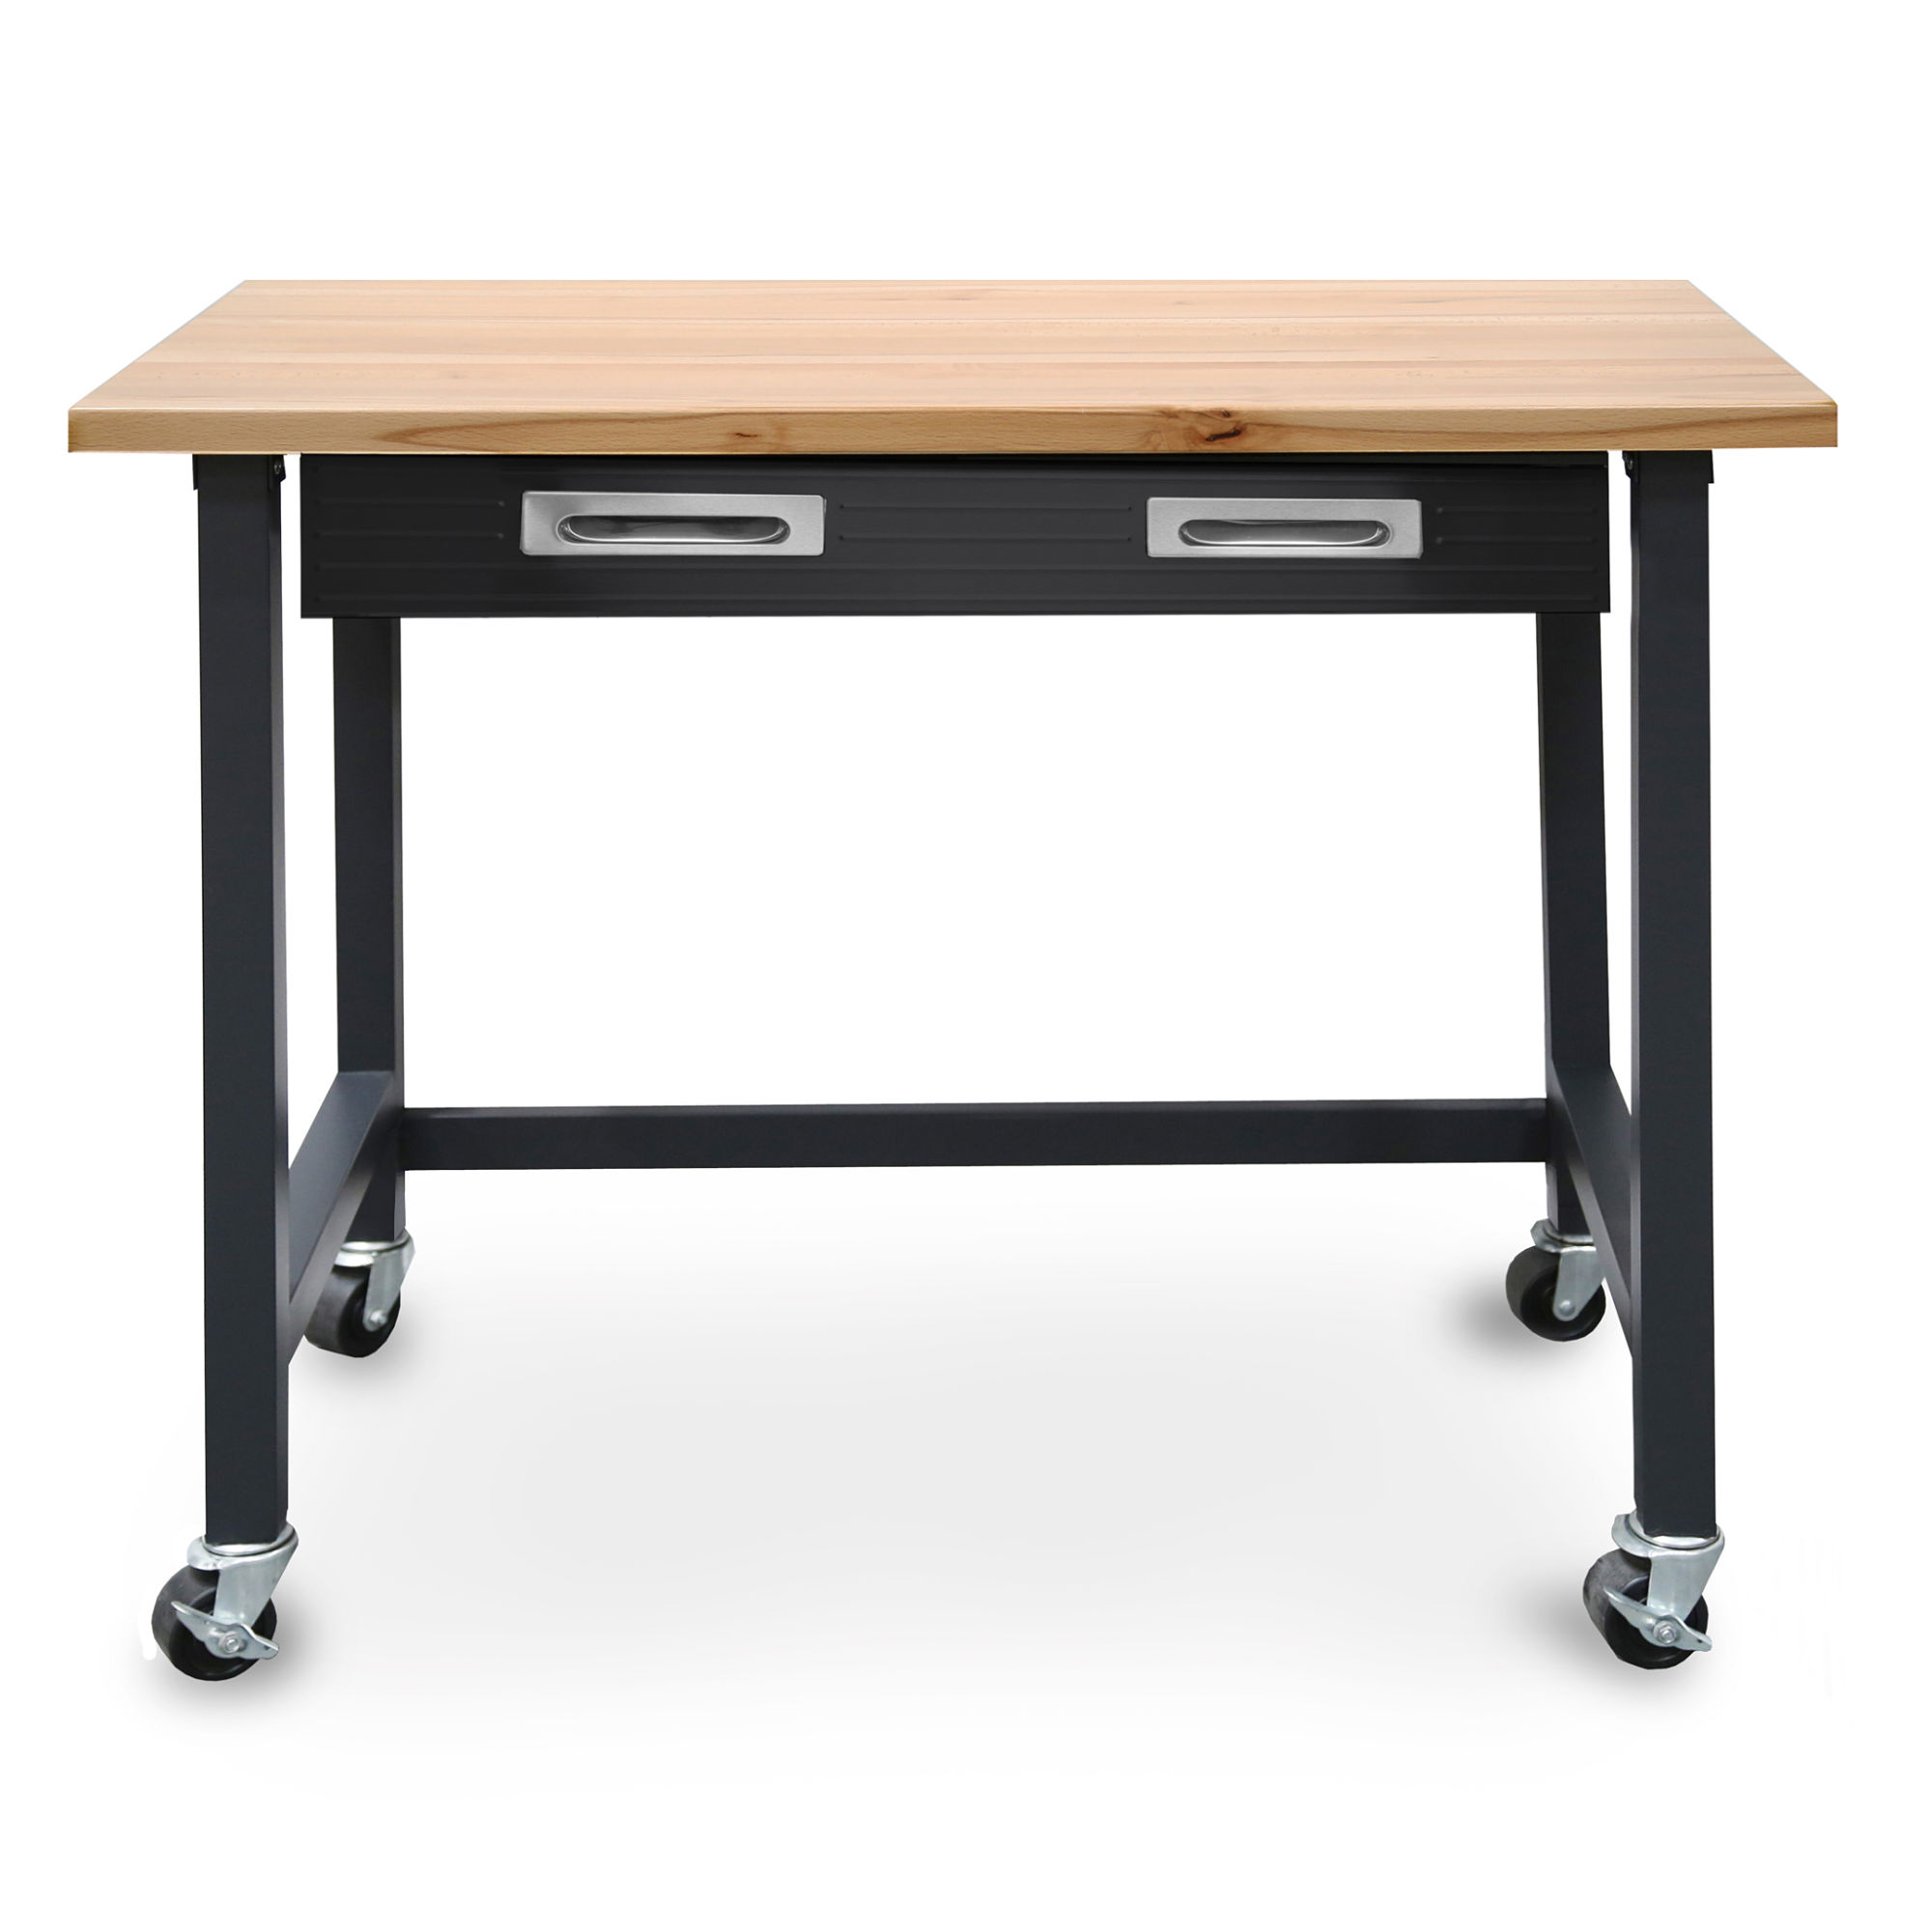 Superb Commercial Heavy Duty Wood Top Workbench With Drawer On Wheels By Seville  Classics